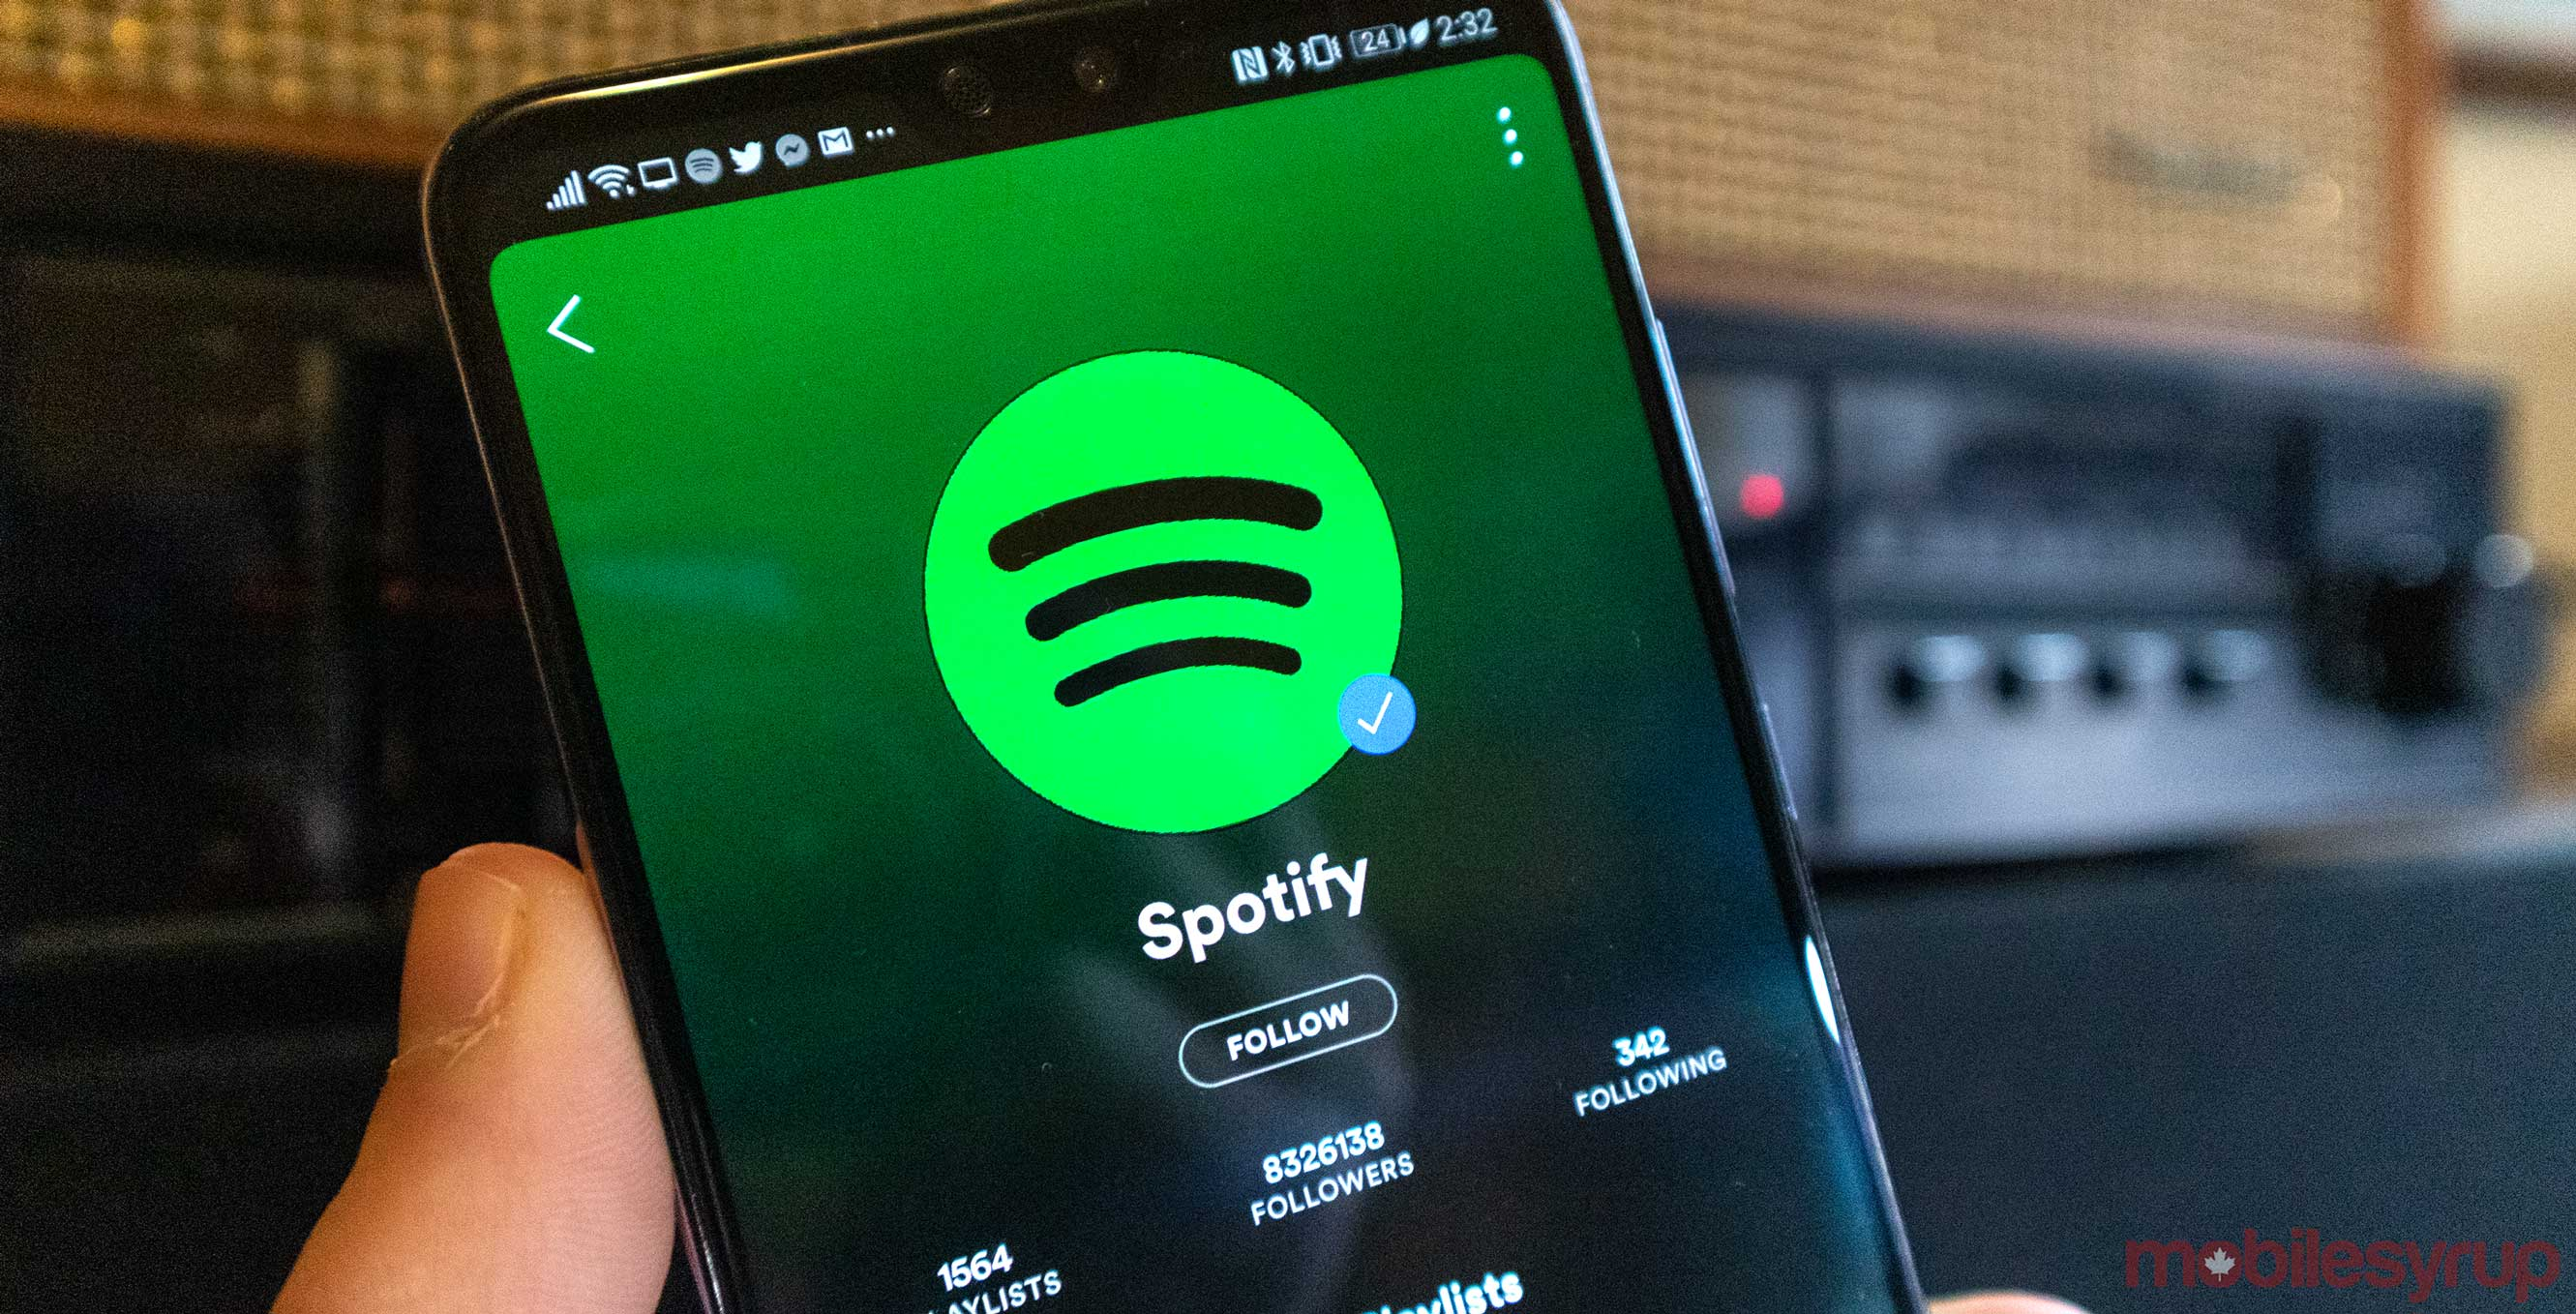 Spotify brings back Android widget in response to user feedback